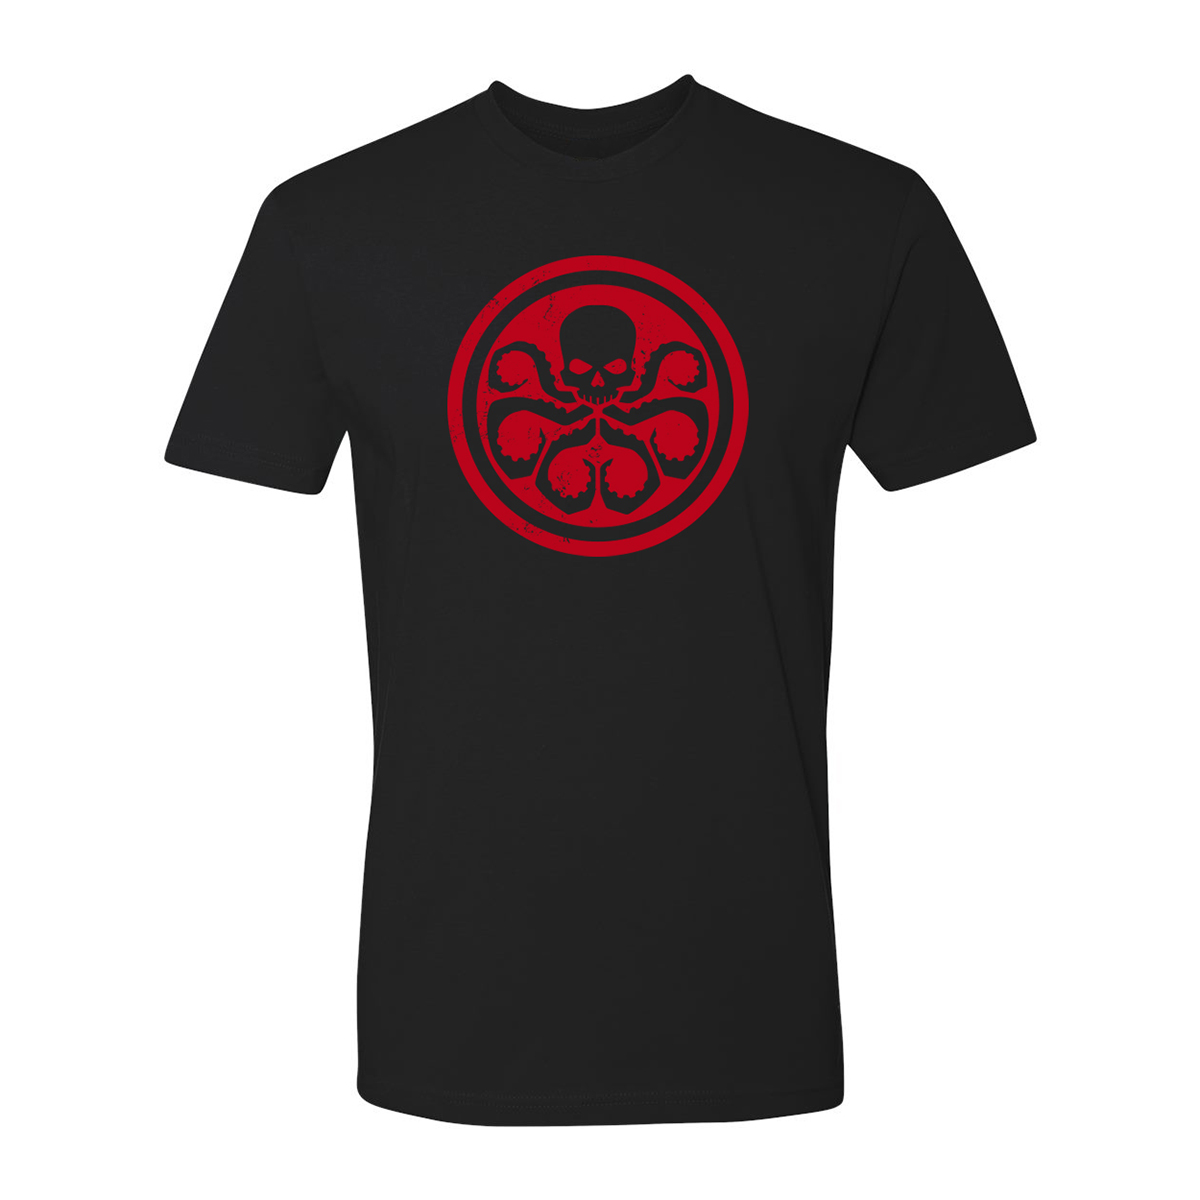 Marvel's Agents of S.H.I.E.L.D Hydra Symbol T-Shirt